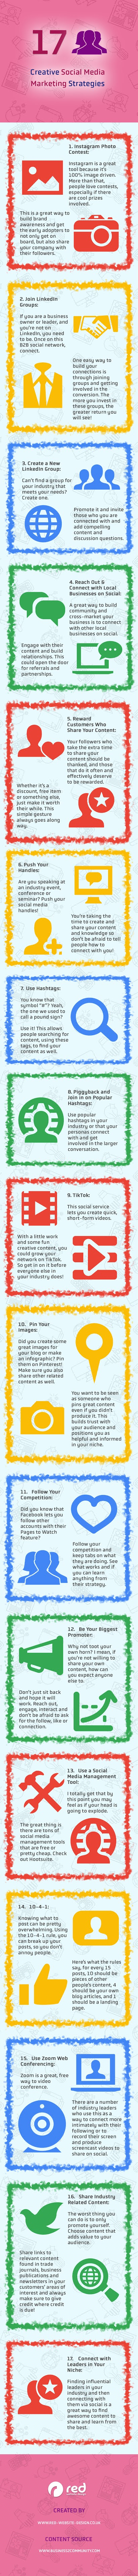 17 Creative Social Media Marketing Strategies #infographic